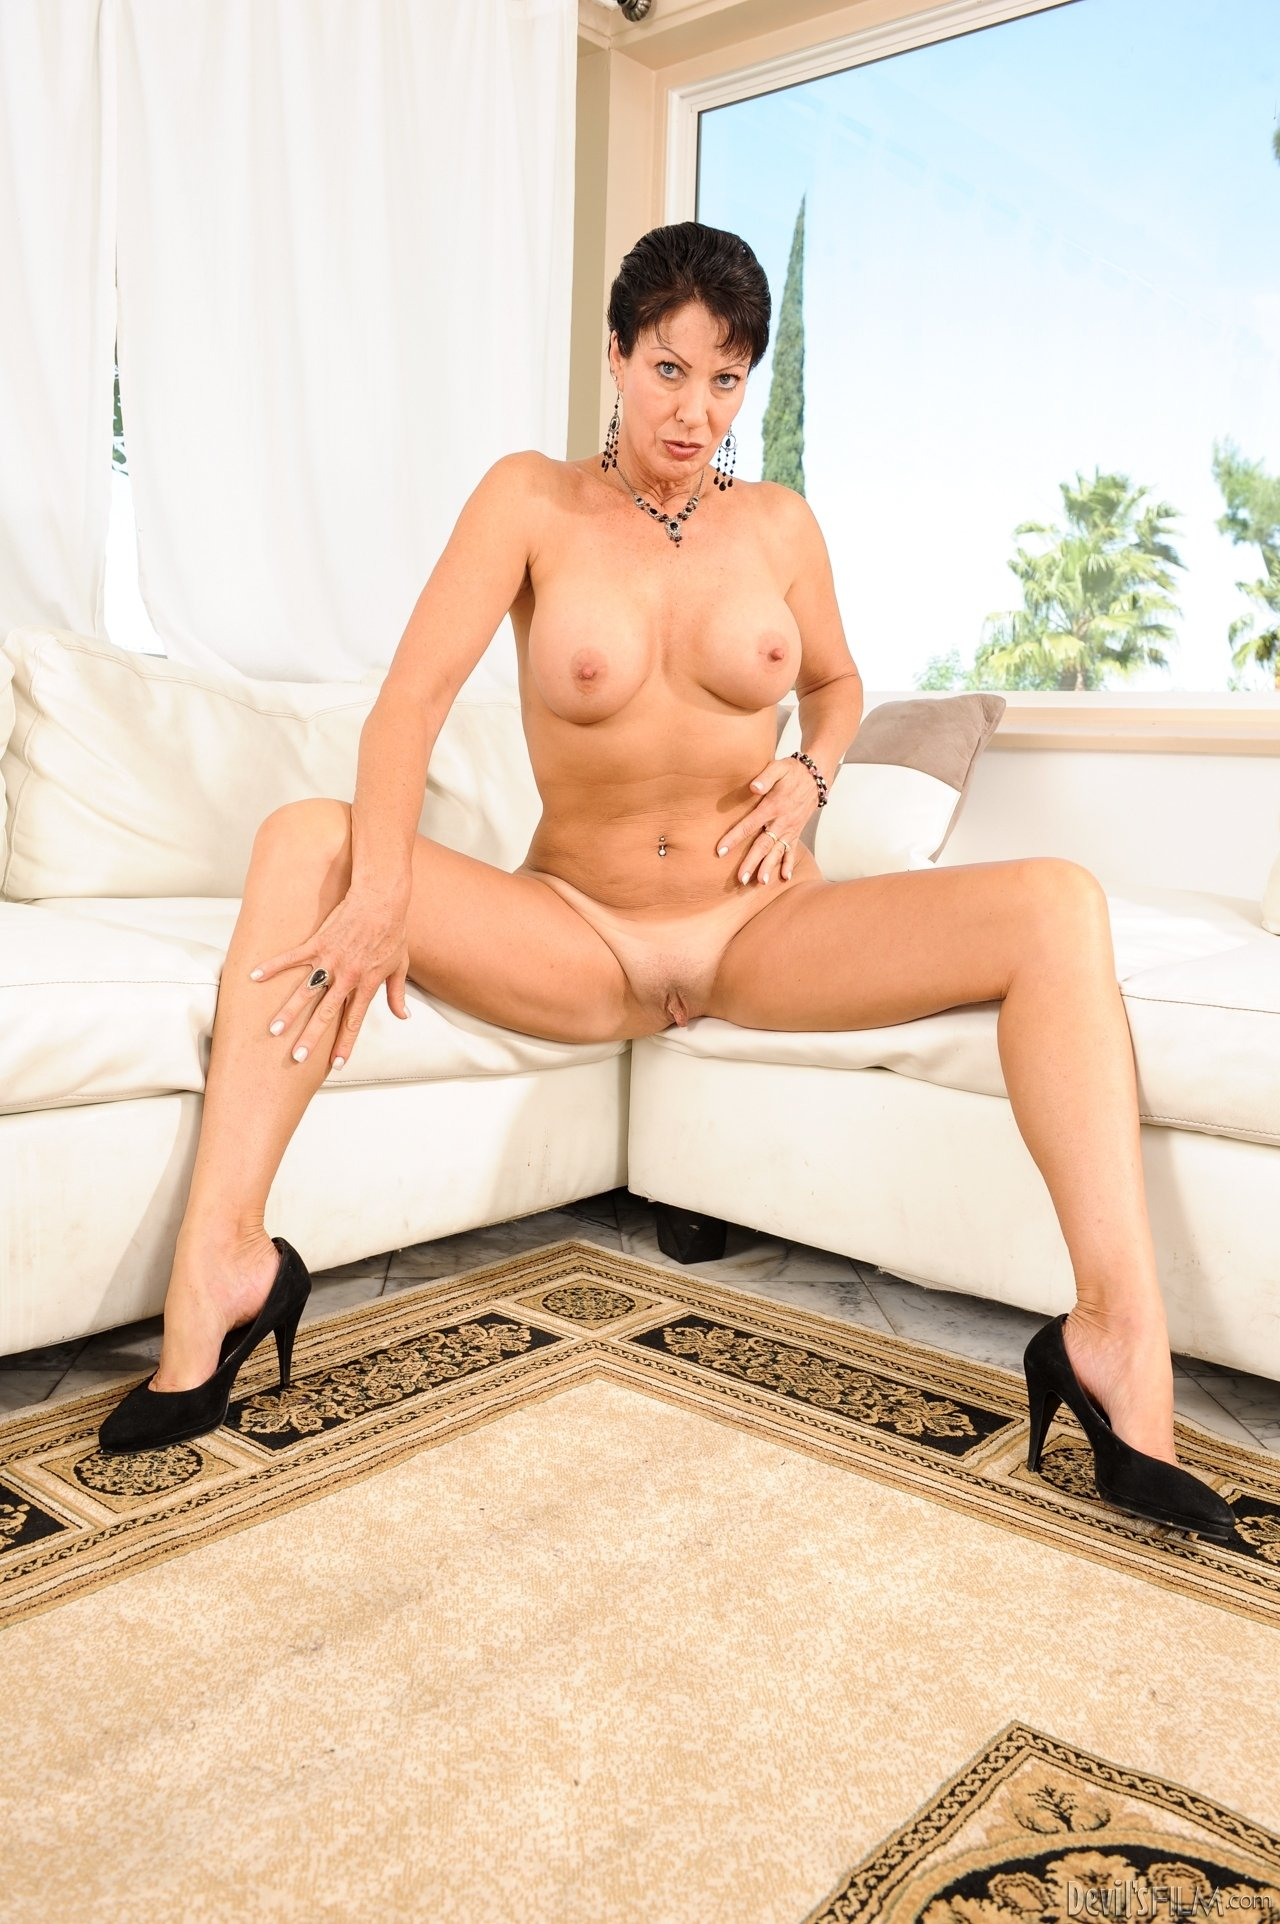 Nude amatures over 30 Hd tits brazil